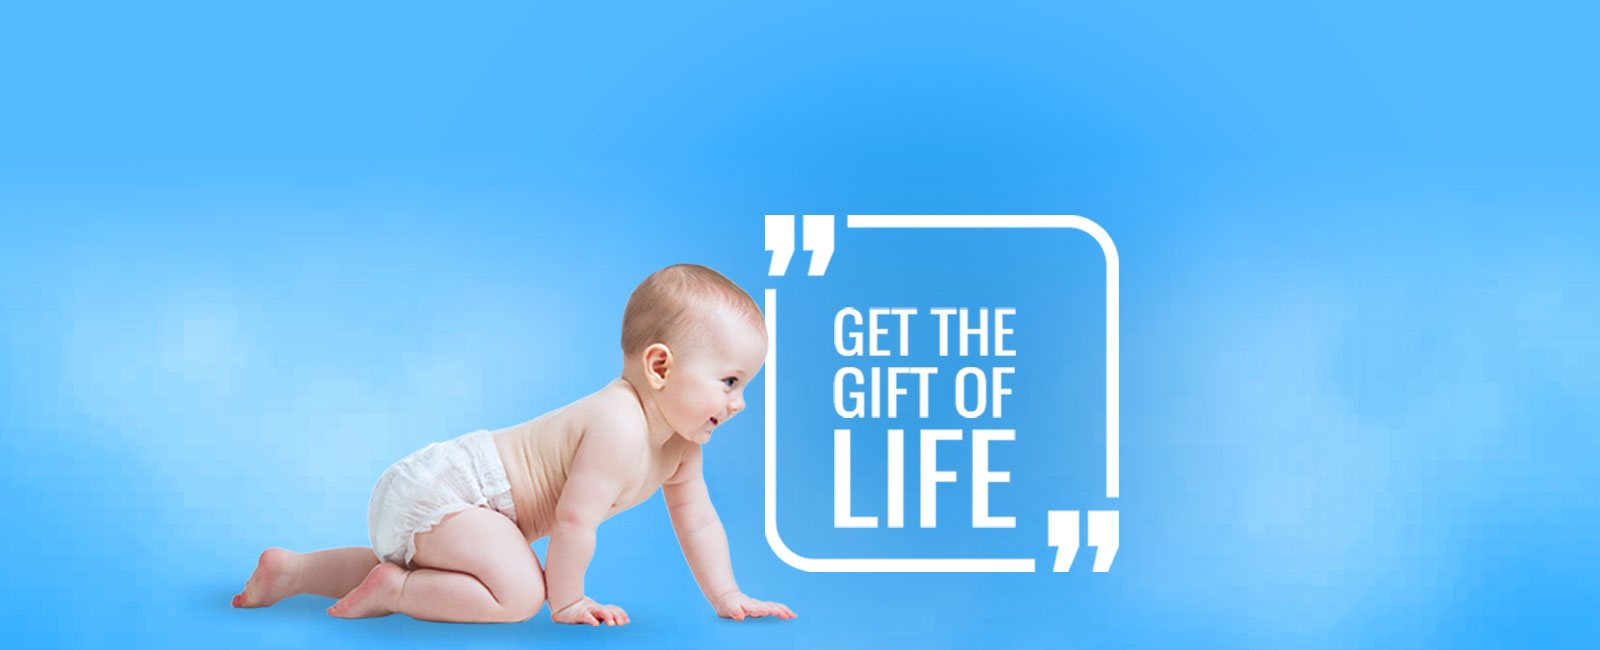 infertility treatment center bangalore, lingarajapuram, karnataka, india